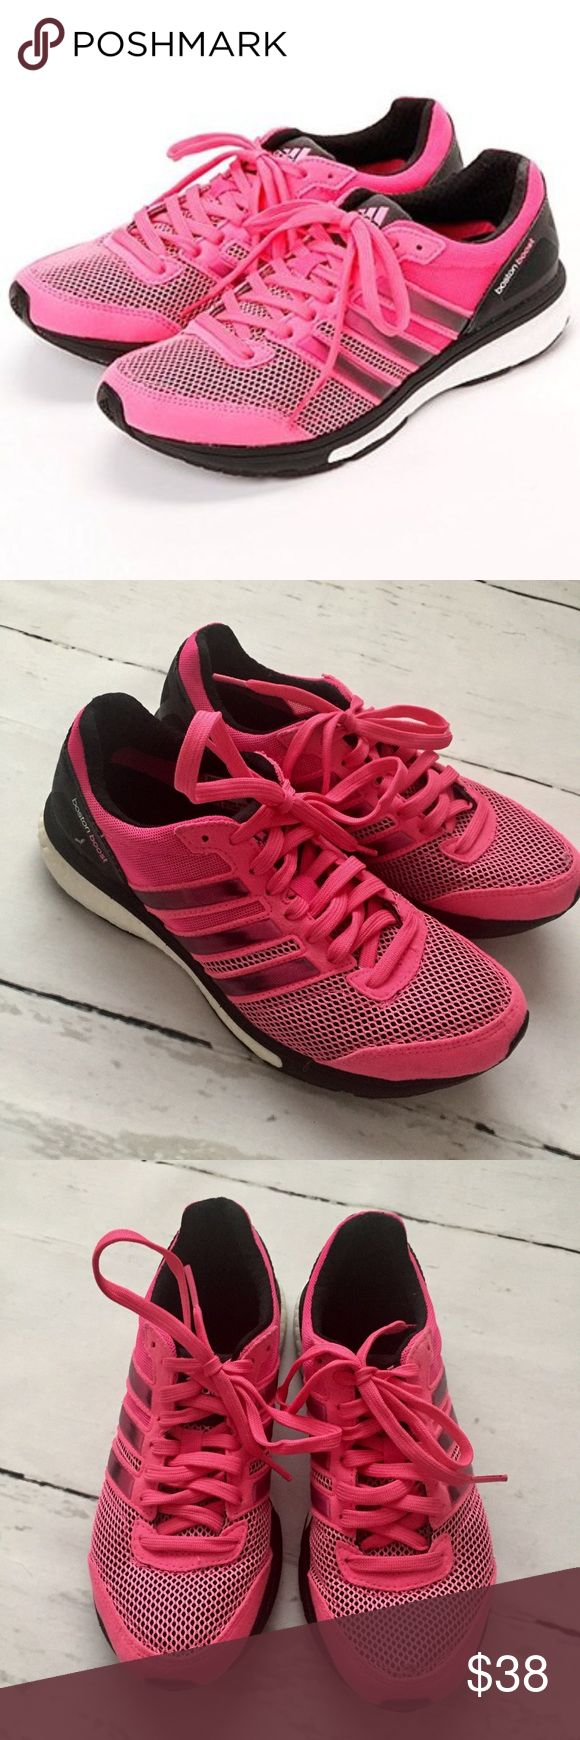 Adidas Adizero Boston Boost Sneakers Adidas Adizero Boston Boost Sneakers in Black and Hot Pink! Excellent Condition! Size 6 adidas Shoes Sneakers